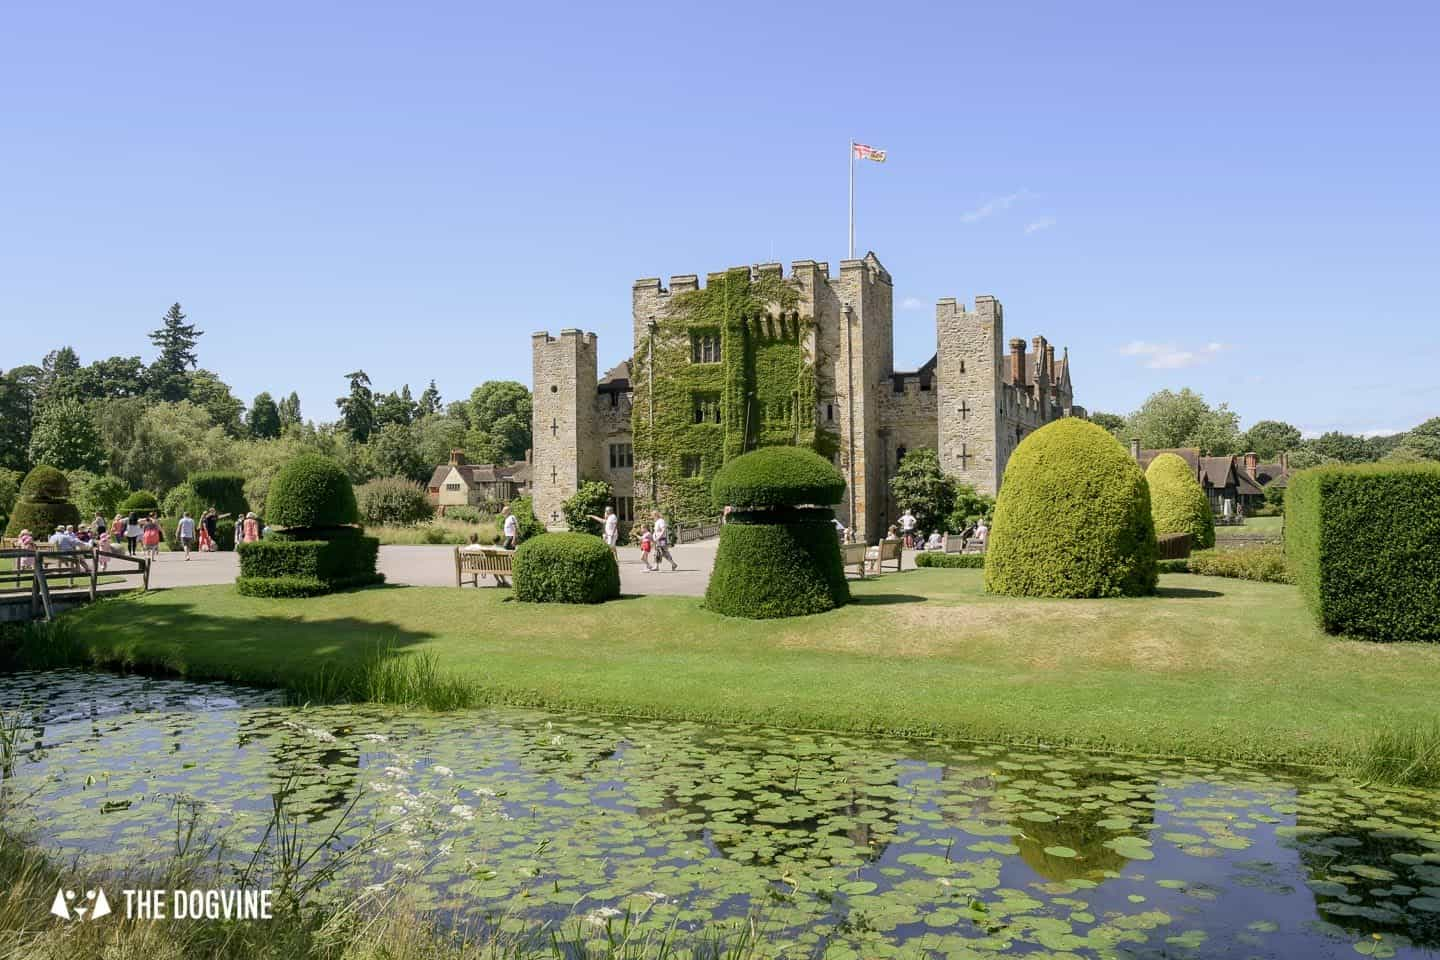 8 Reasons To Visit the Stunning Dog-friendly Hever Castle 7